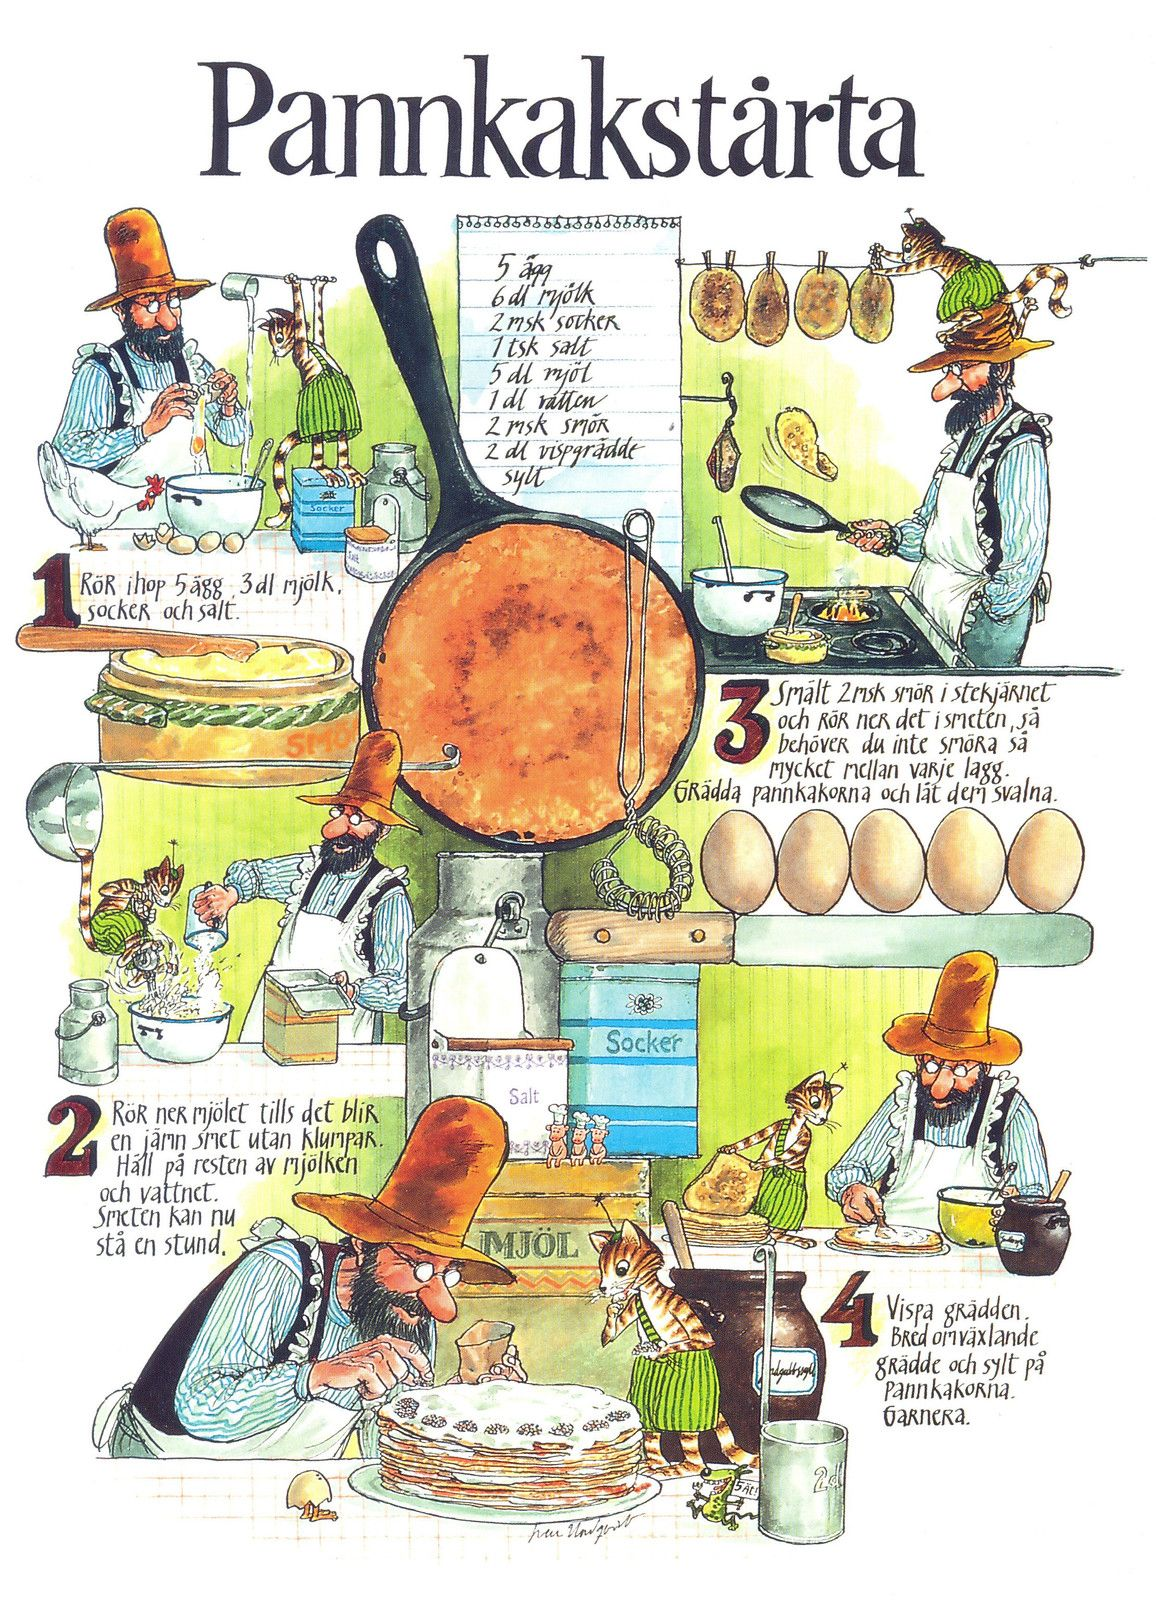 Pancake Cake Recipe From Pettson And Findus In 2020 Easy Banana